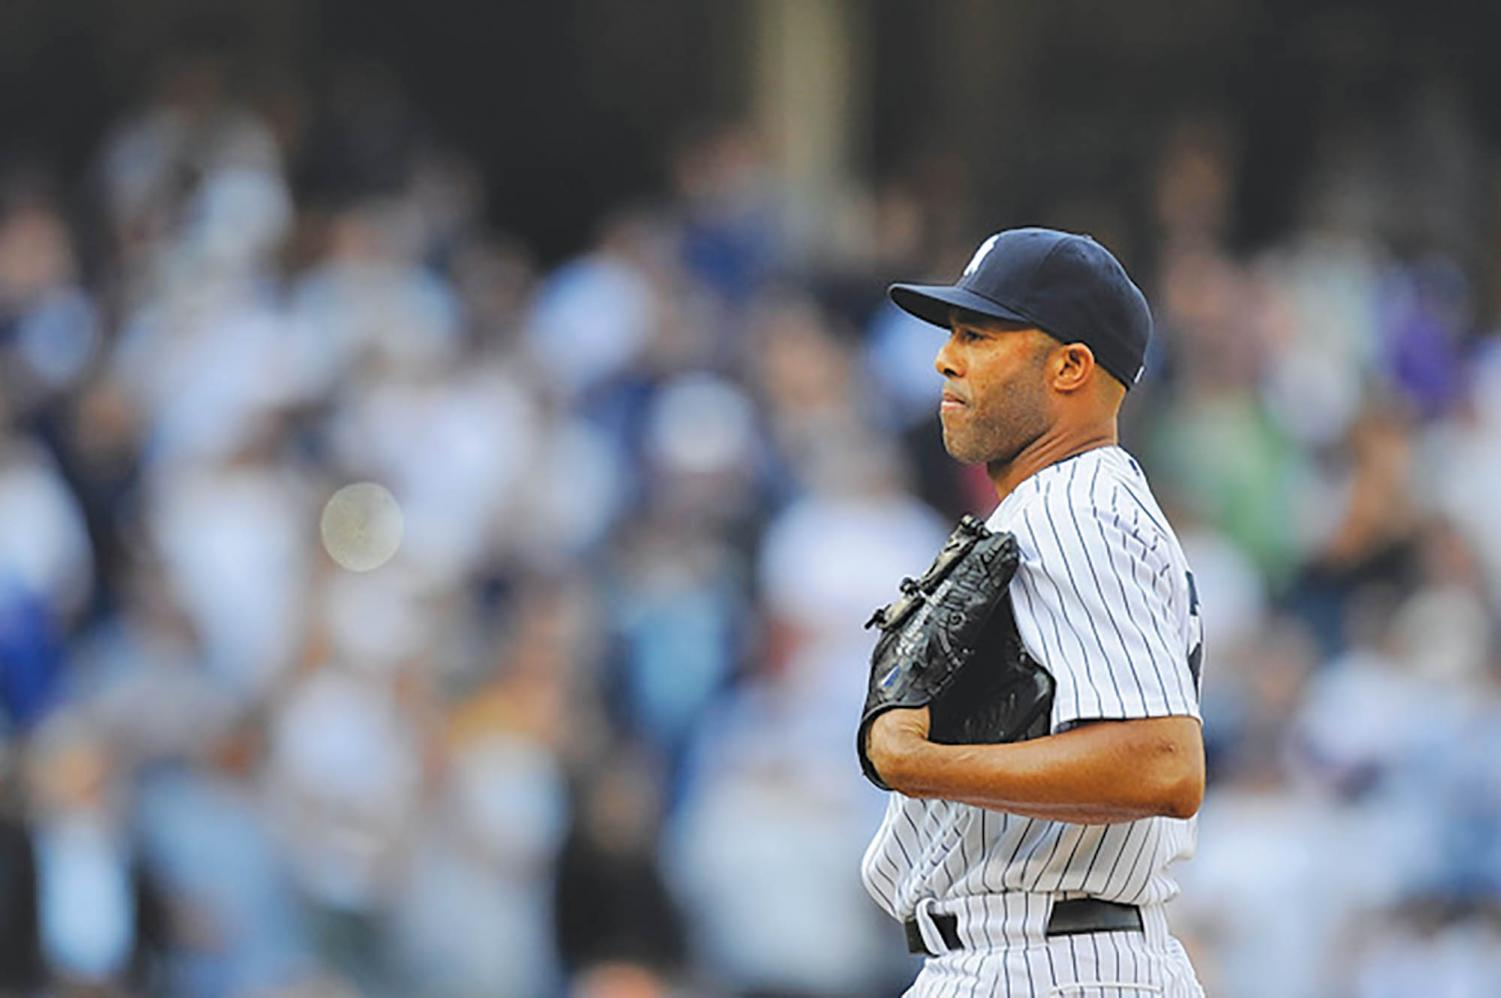 Mariano Rivera headlines the 2019 Baseball Hall of Fame inductees with unanimous voting.